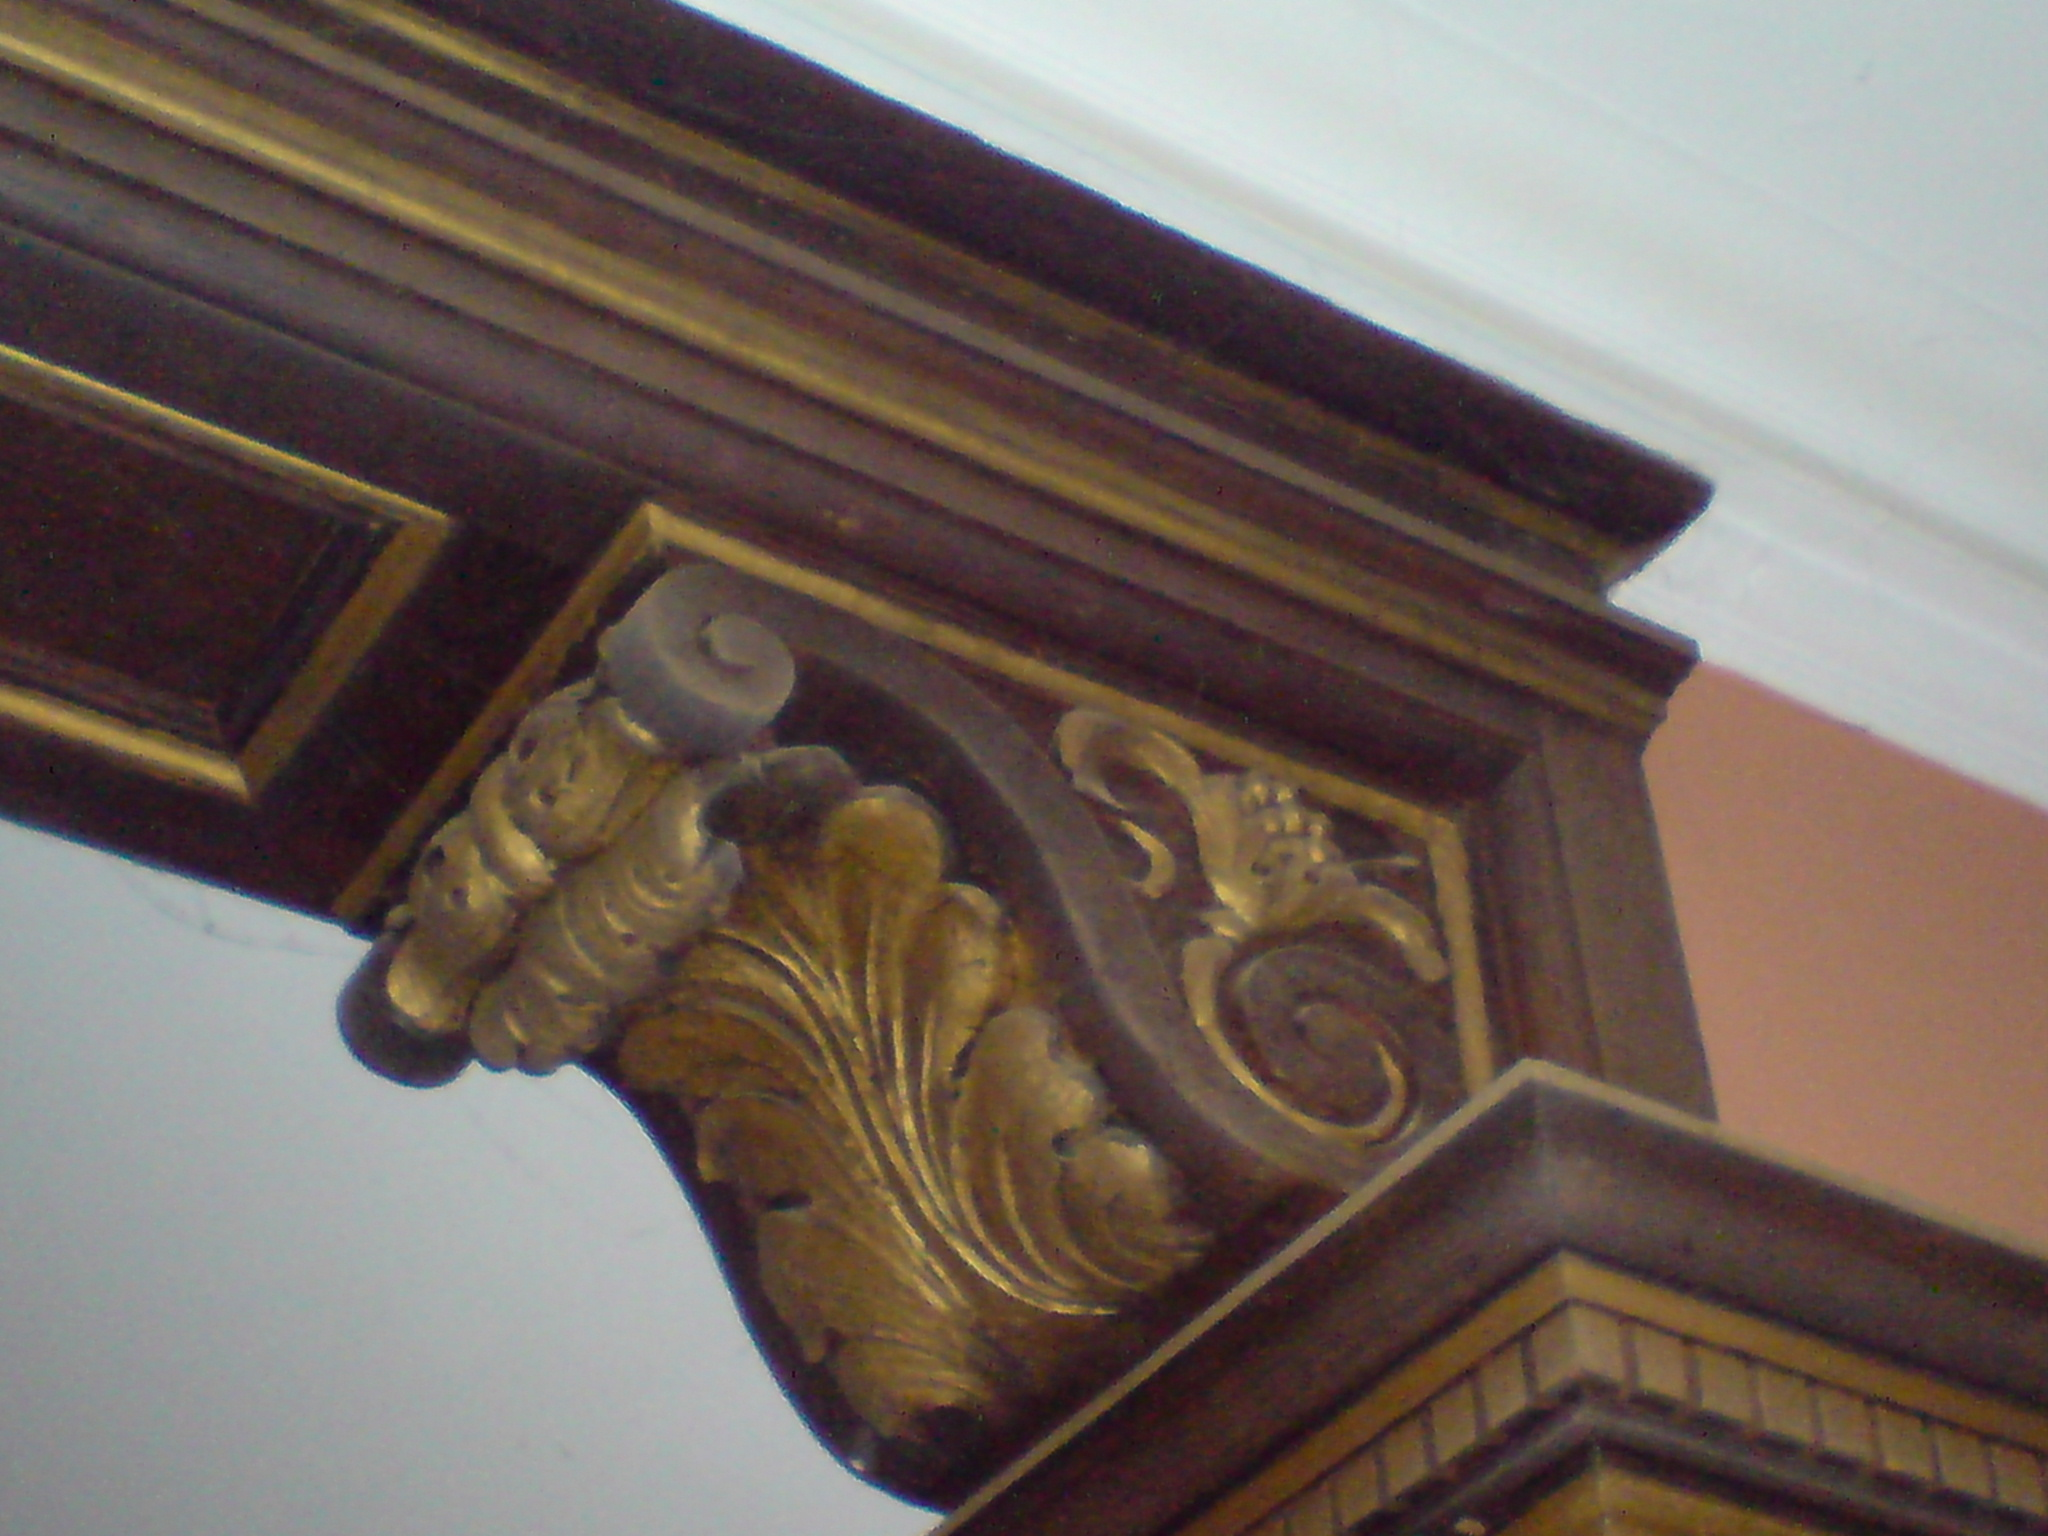 Sandblasted Wood Image Gallery Before After Images